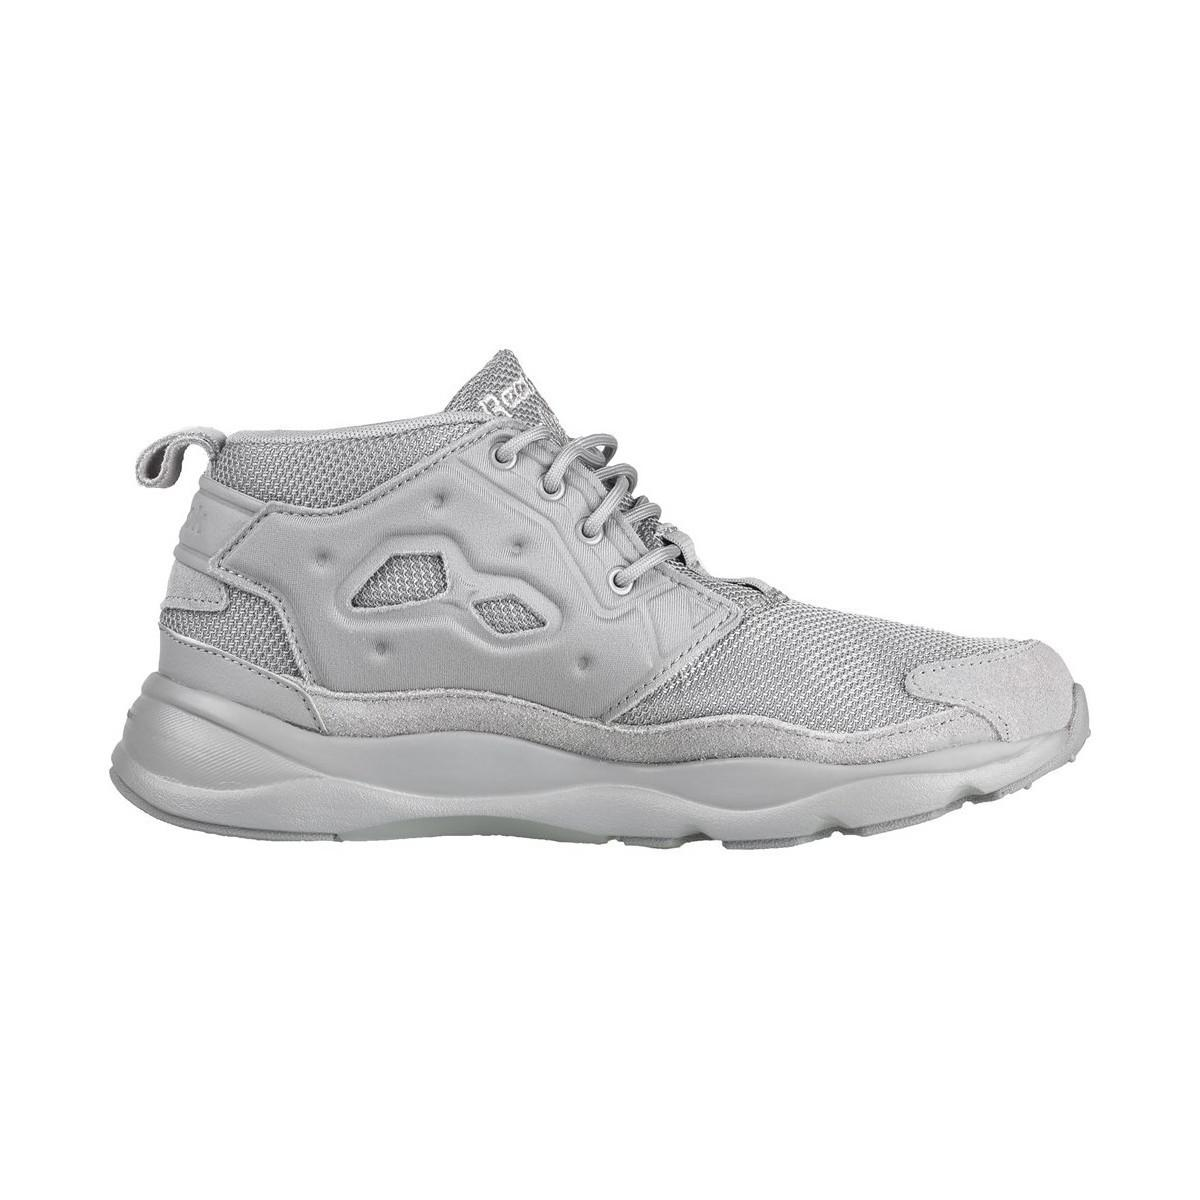 c740aaaef Reebok Furylite Chukka Men s Shoes (trainers) In Grey in Gray for ...